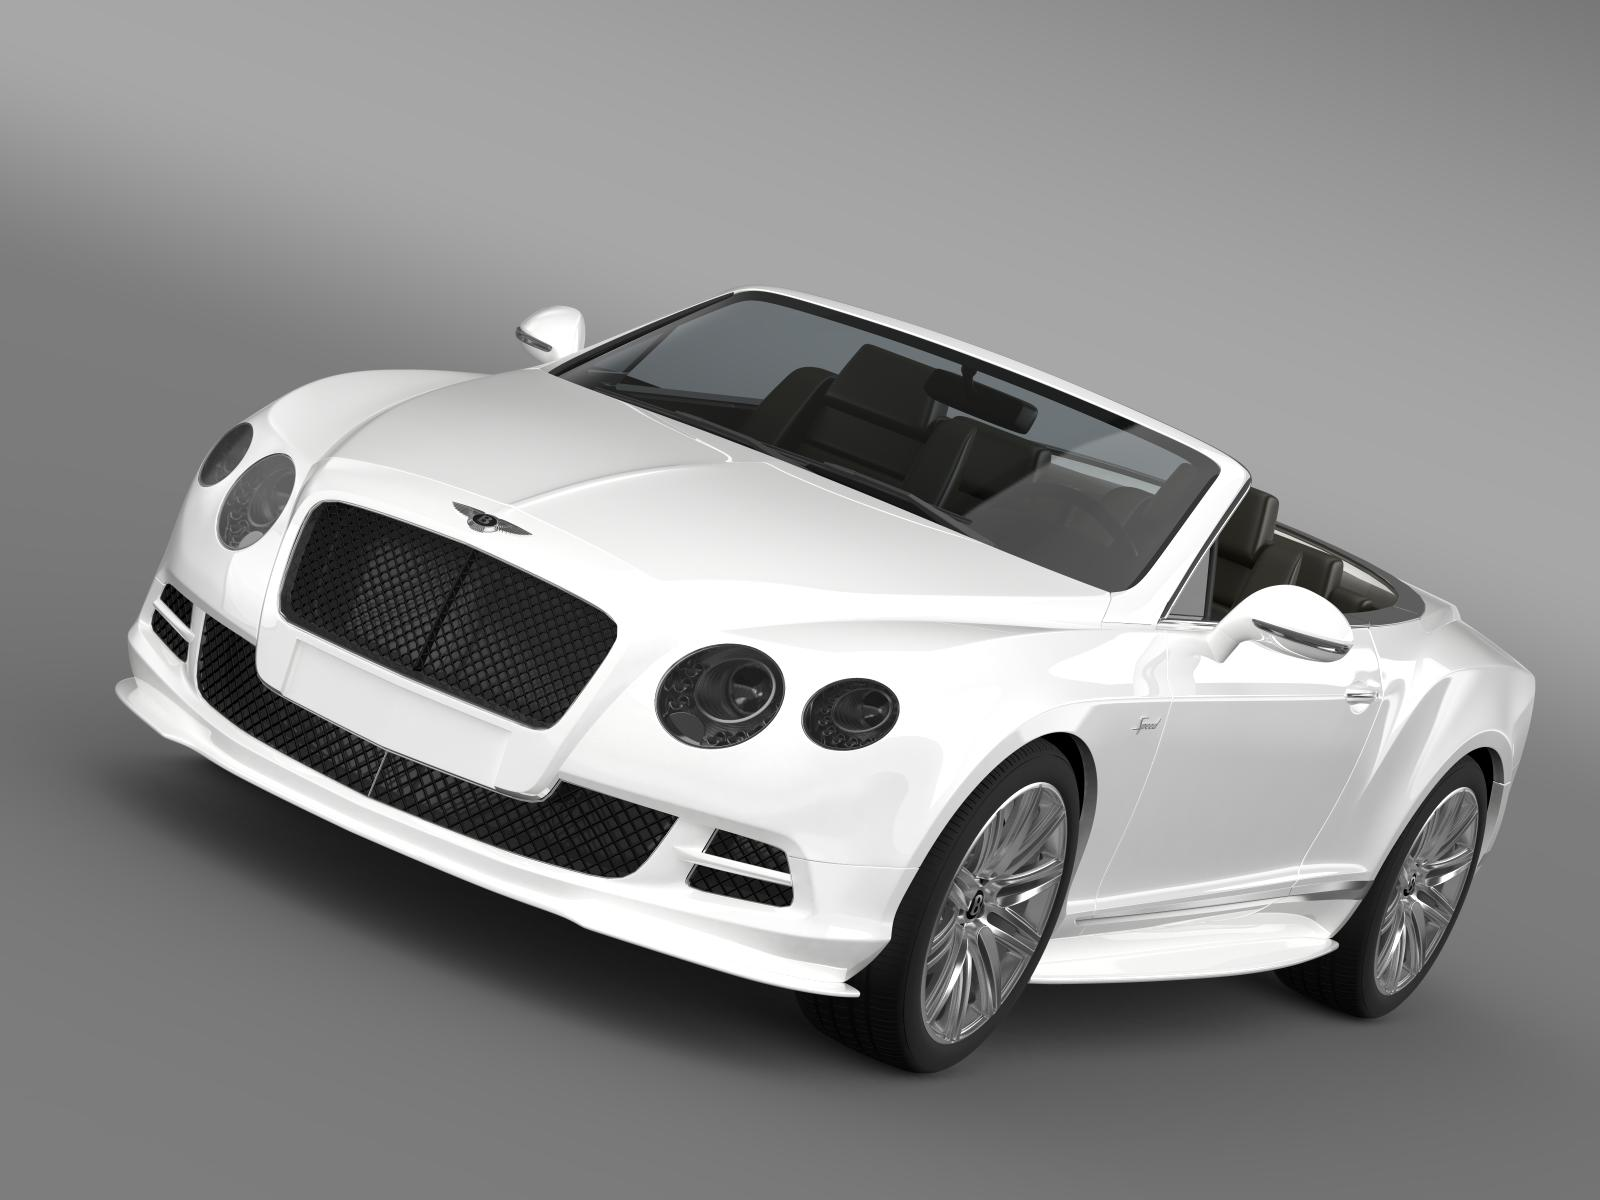 bentley continental gt speed convertible 2014 3d model 3ds max fbx c4d lwo ma mb hrc xsi obj 163865